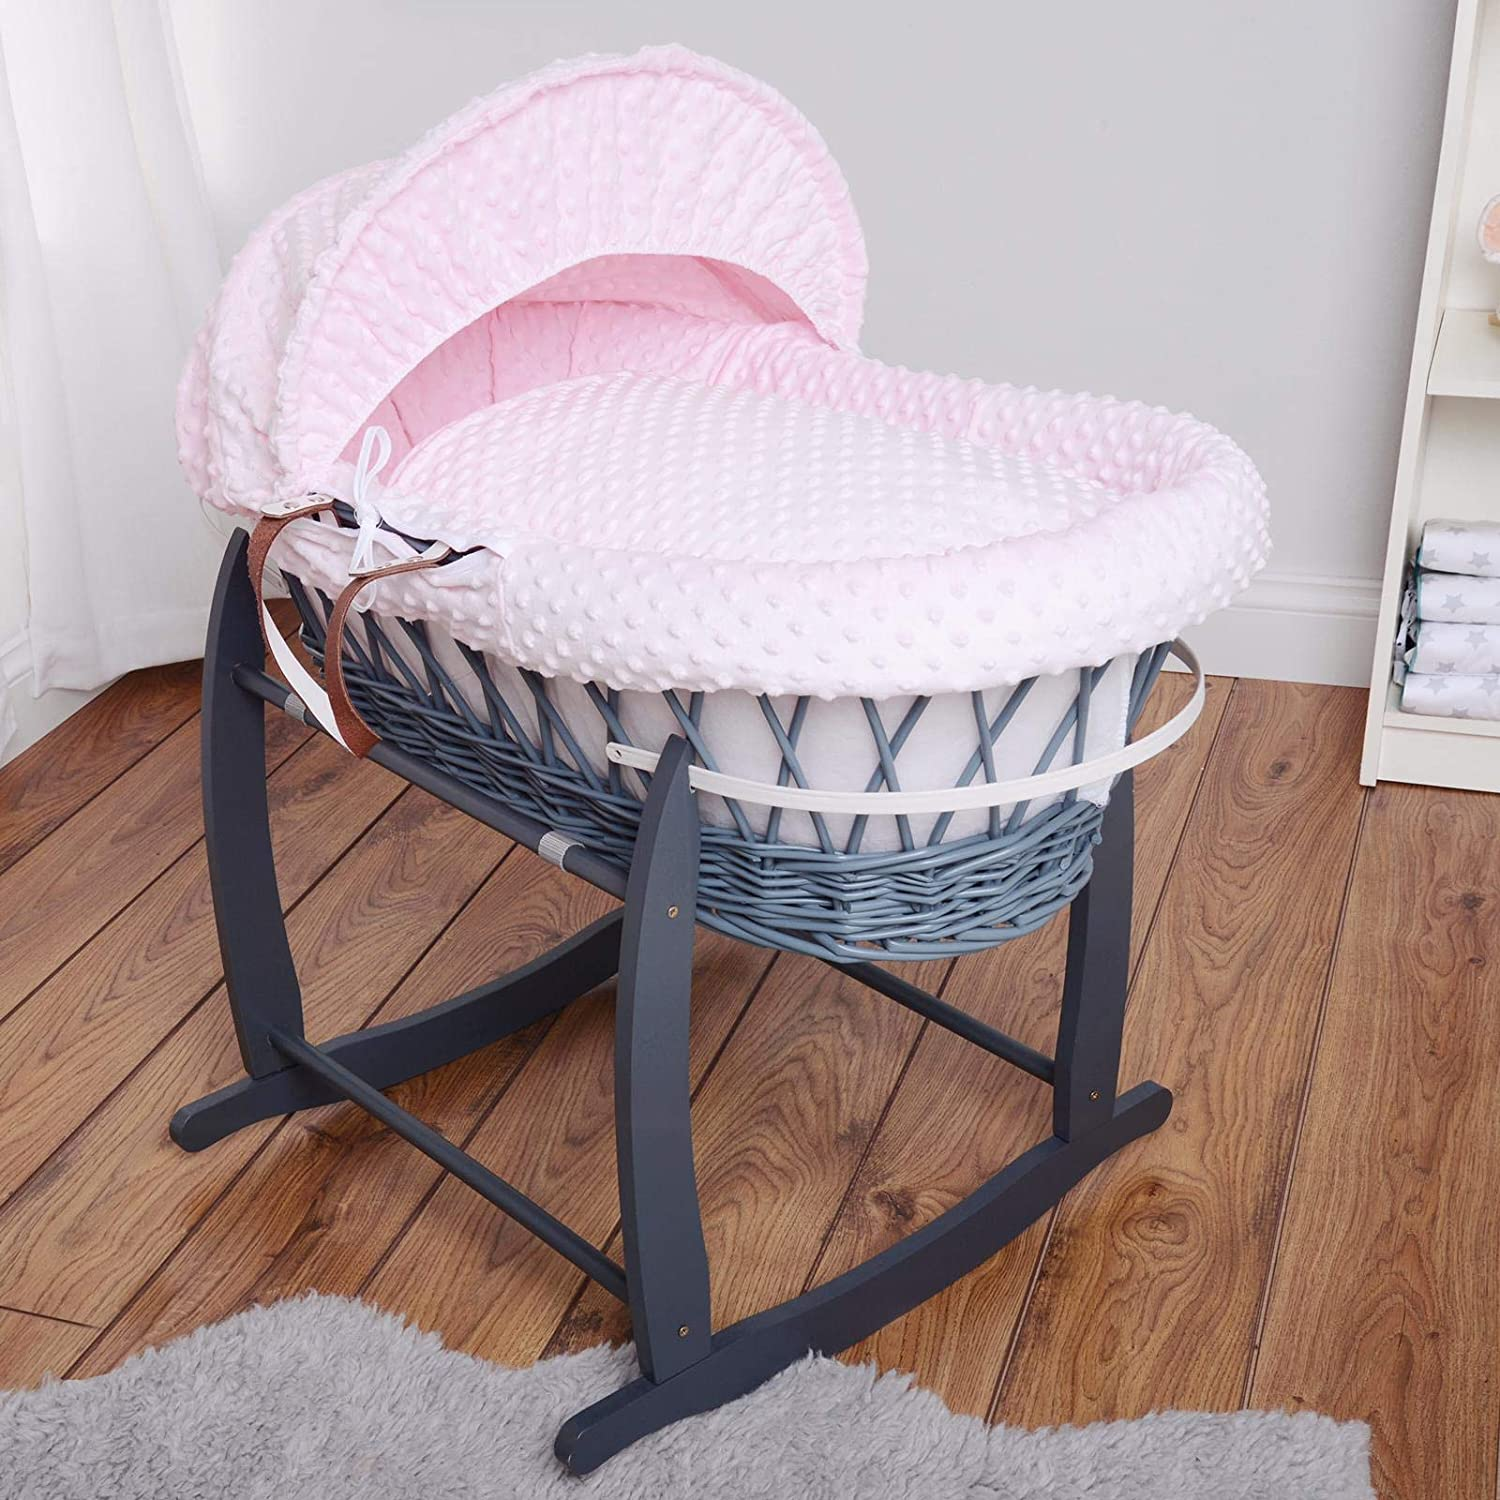 Isabella Alicia Designer Grey Wicker Moses Basket with Pink Dimple Dressing and Rocking Stand